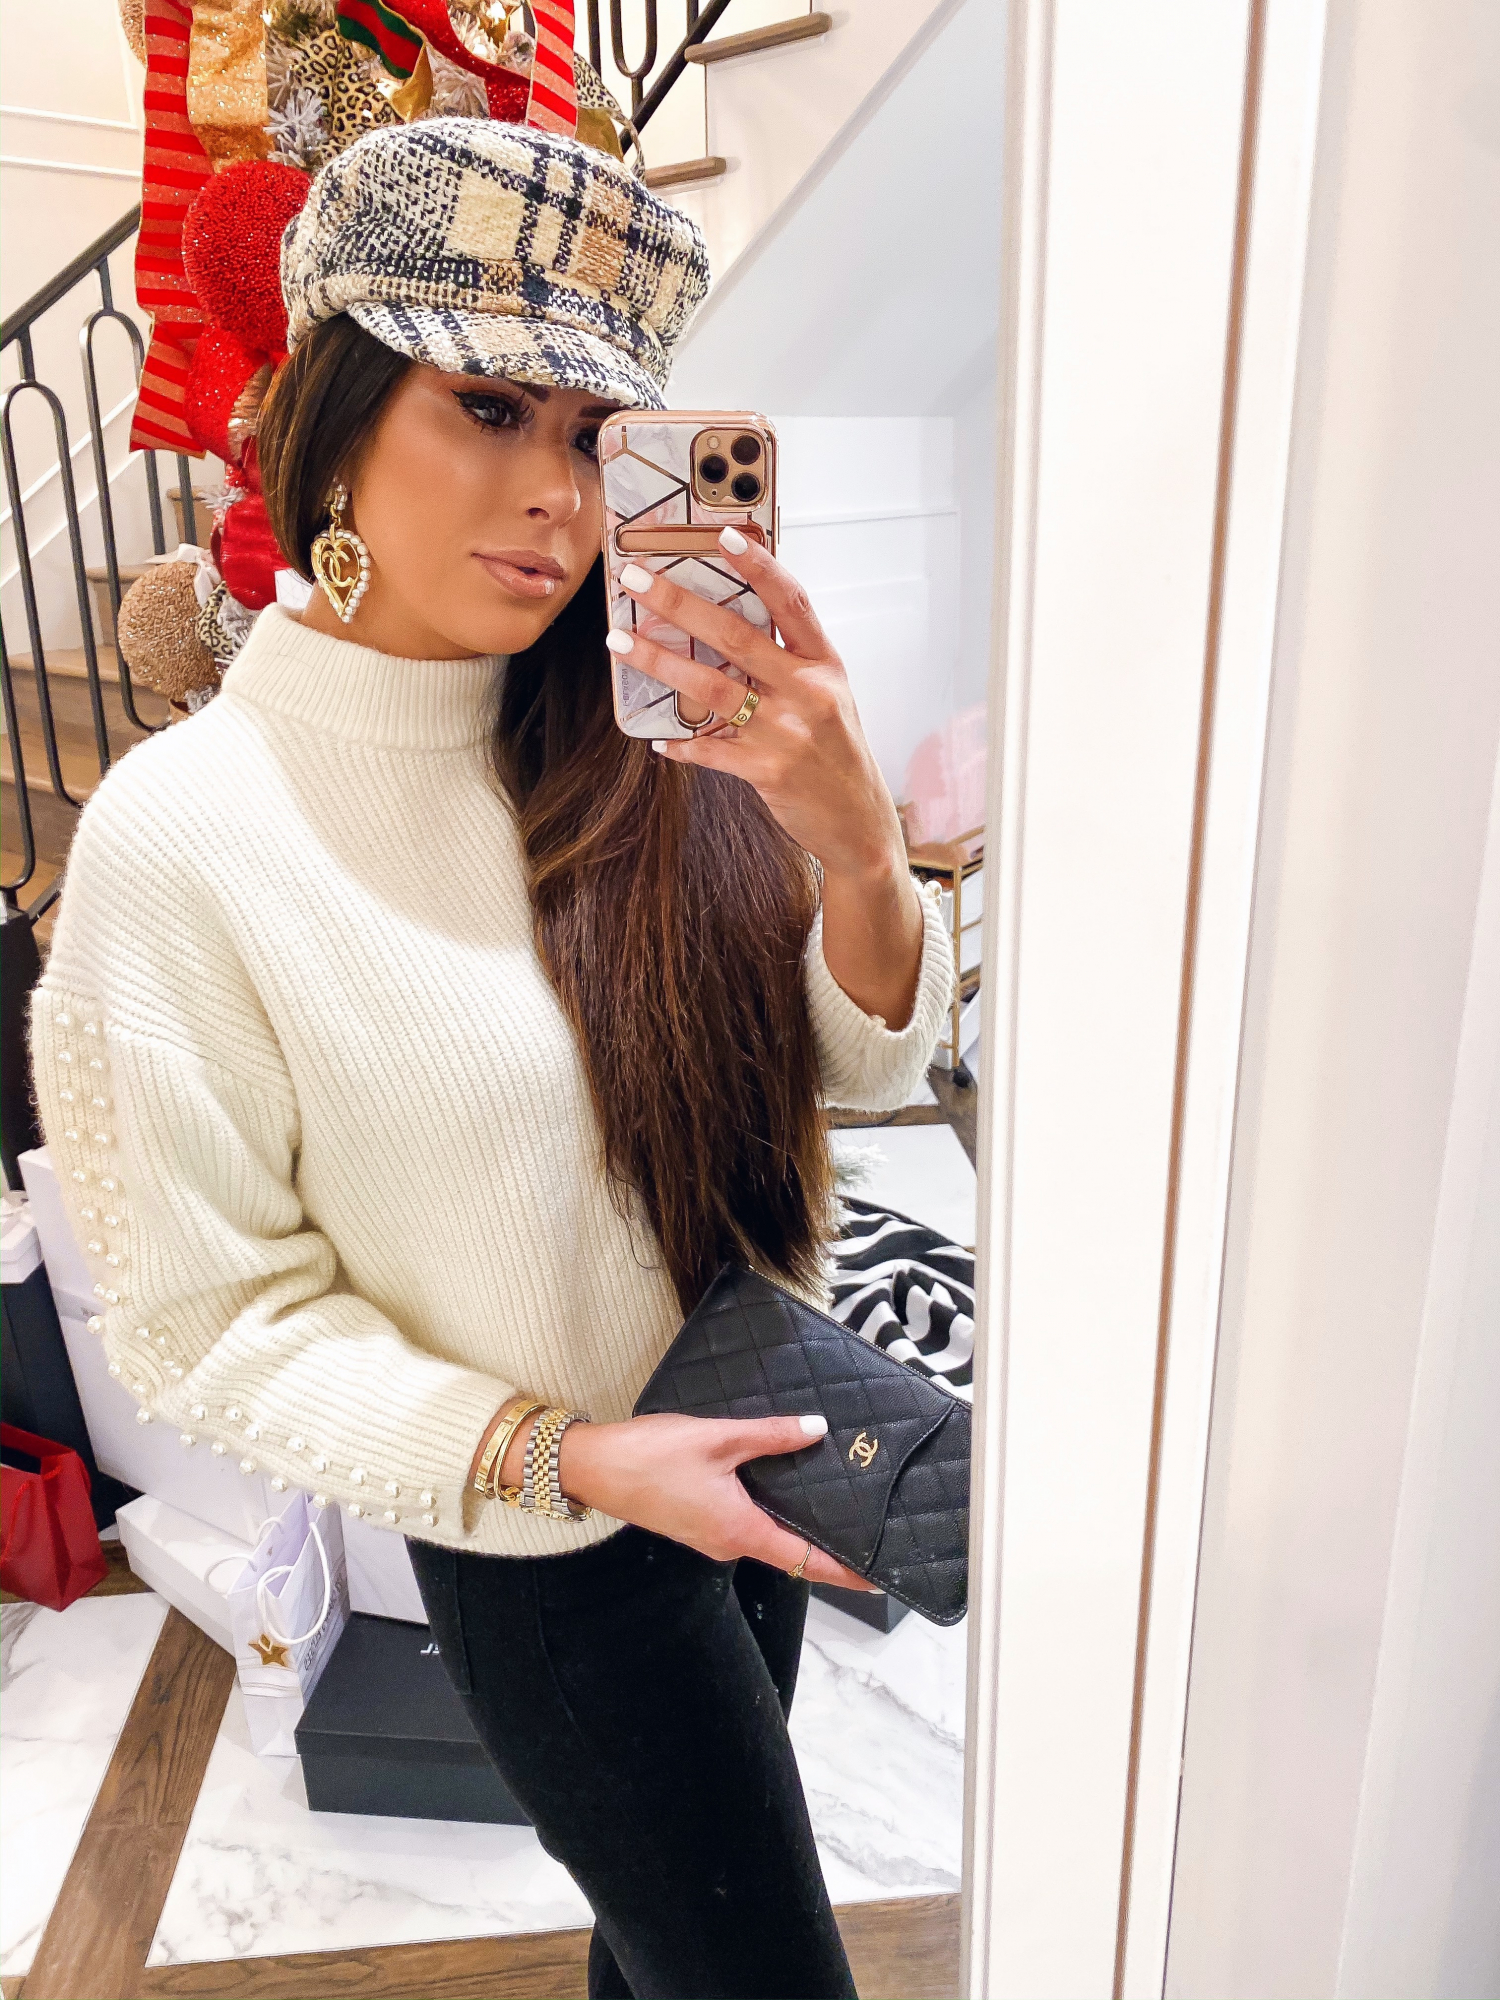 chanel pearl heart earrings, cream sweater pearls on sleeves, chanel phone wallet case | A YEAR IN REVIEW : MASSIVE 2019 INSTAGRAM RECAP by popular Oklahoma life and style blog, The Sweetest Thing: image of a woman wearing a H&M tweed baker hat and H&M Sweater with Pearlescent Beads.